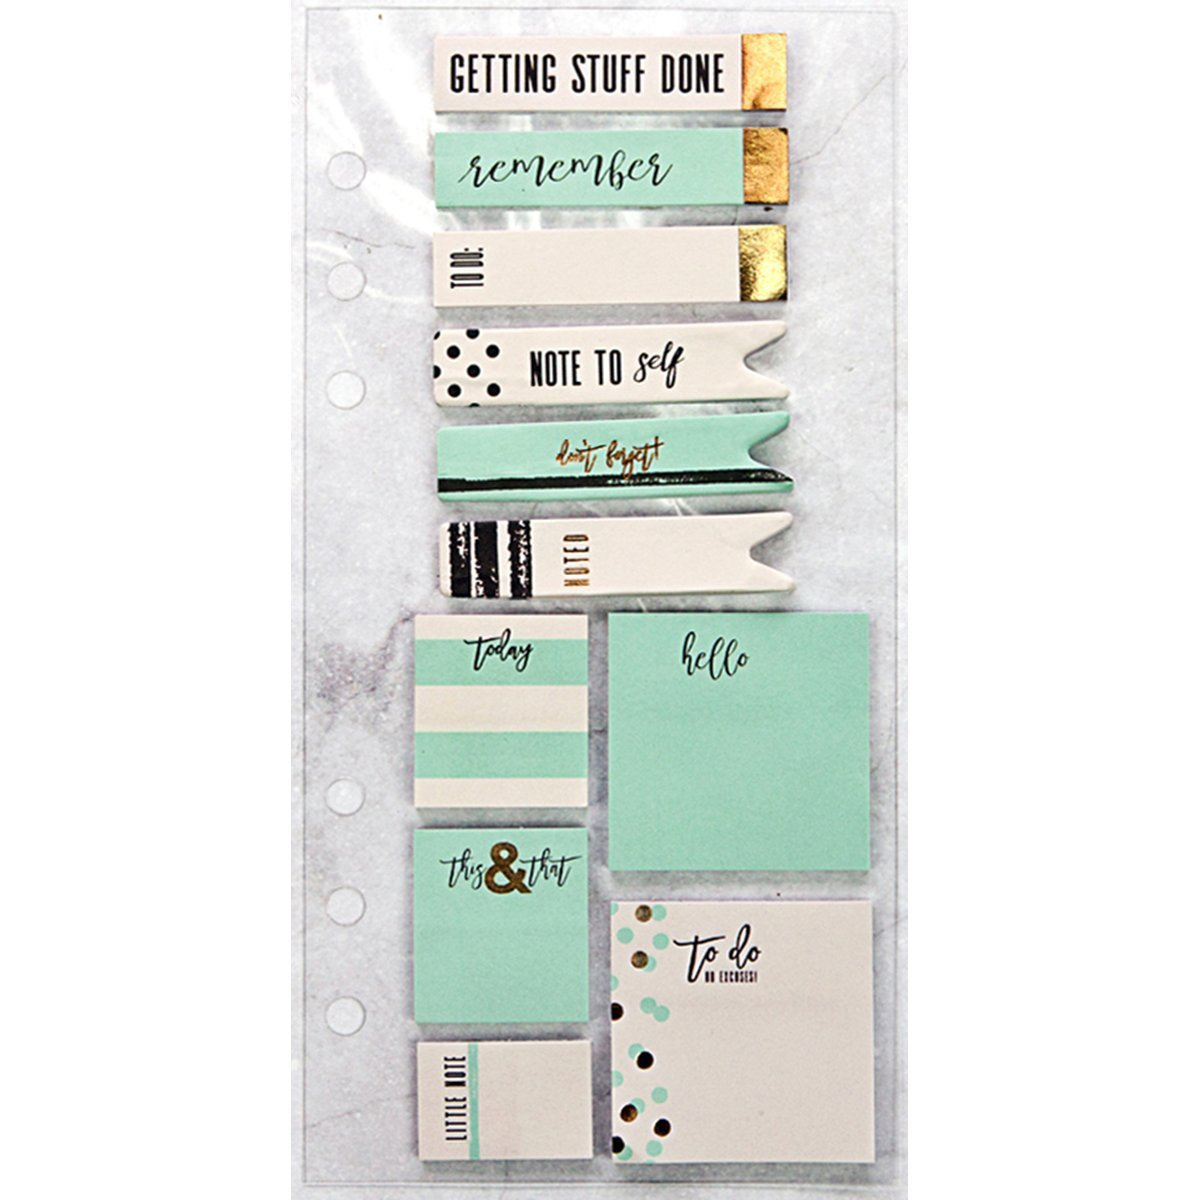 Planner accessories you need to organize your life!